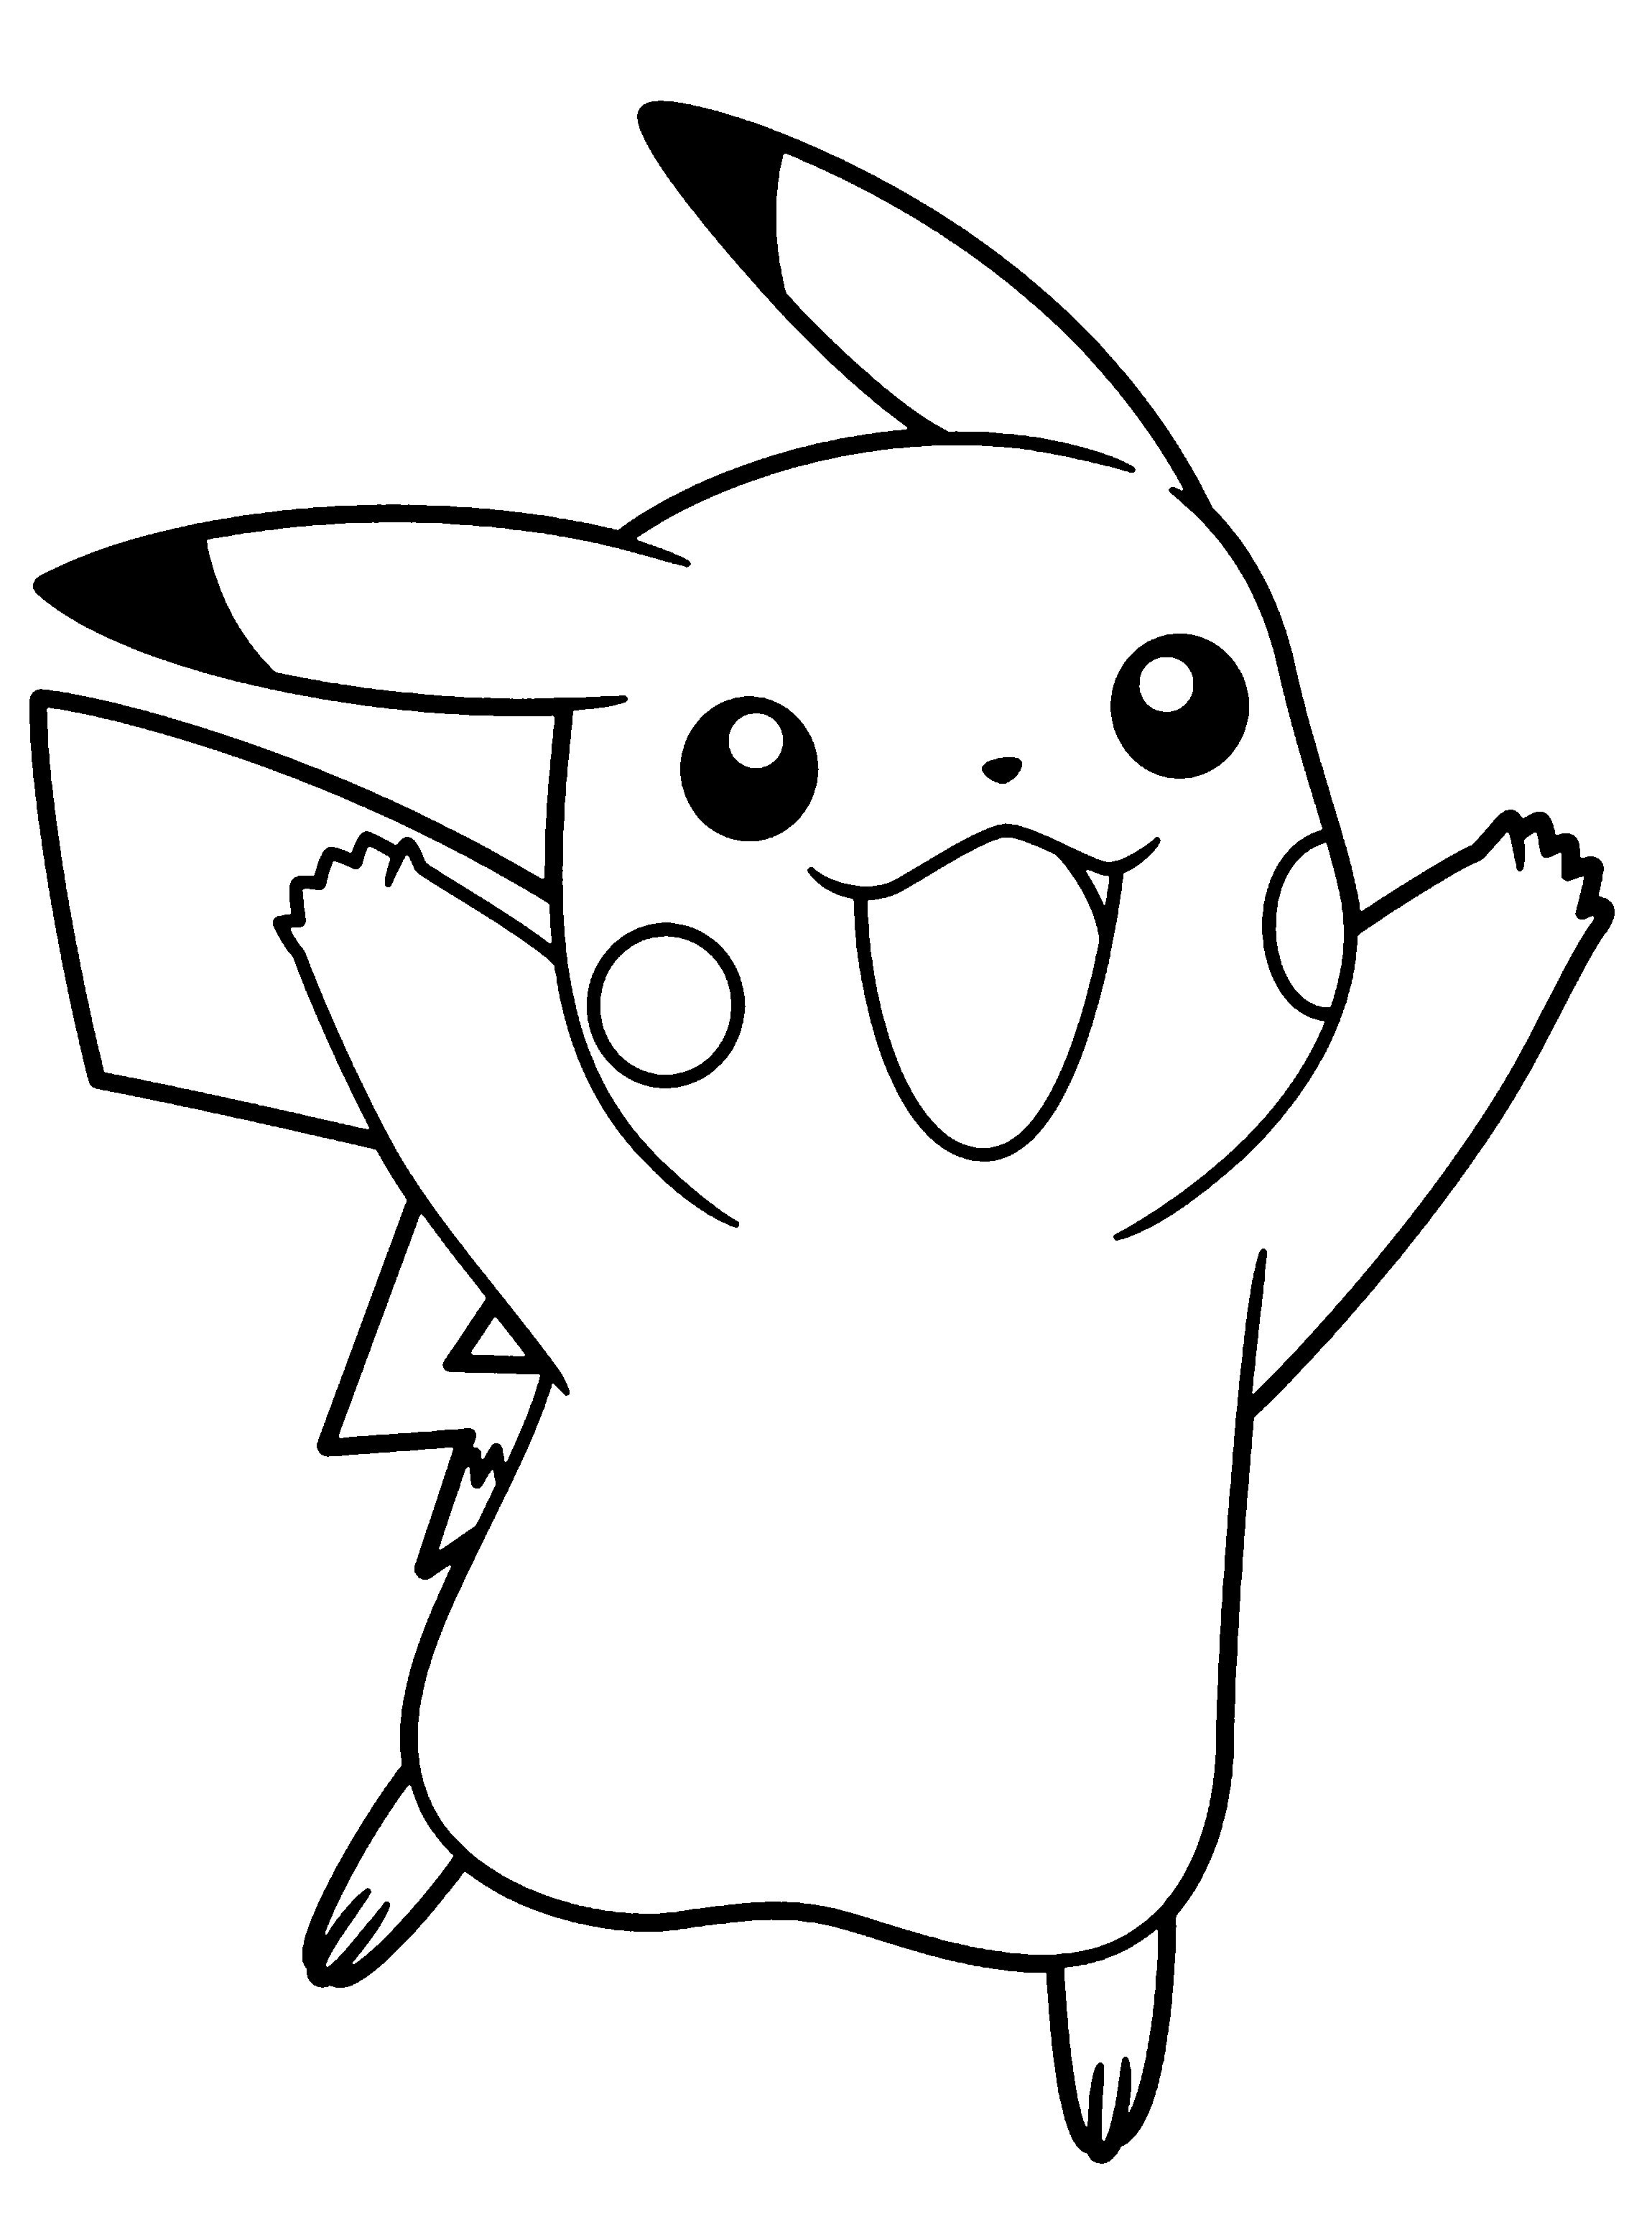 pikachu coloring pages cute pikachu coloring pages at getdrawings free download pages pikachu coloring